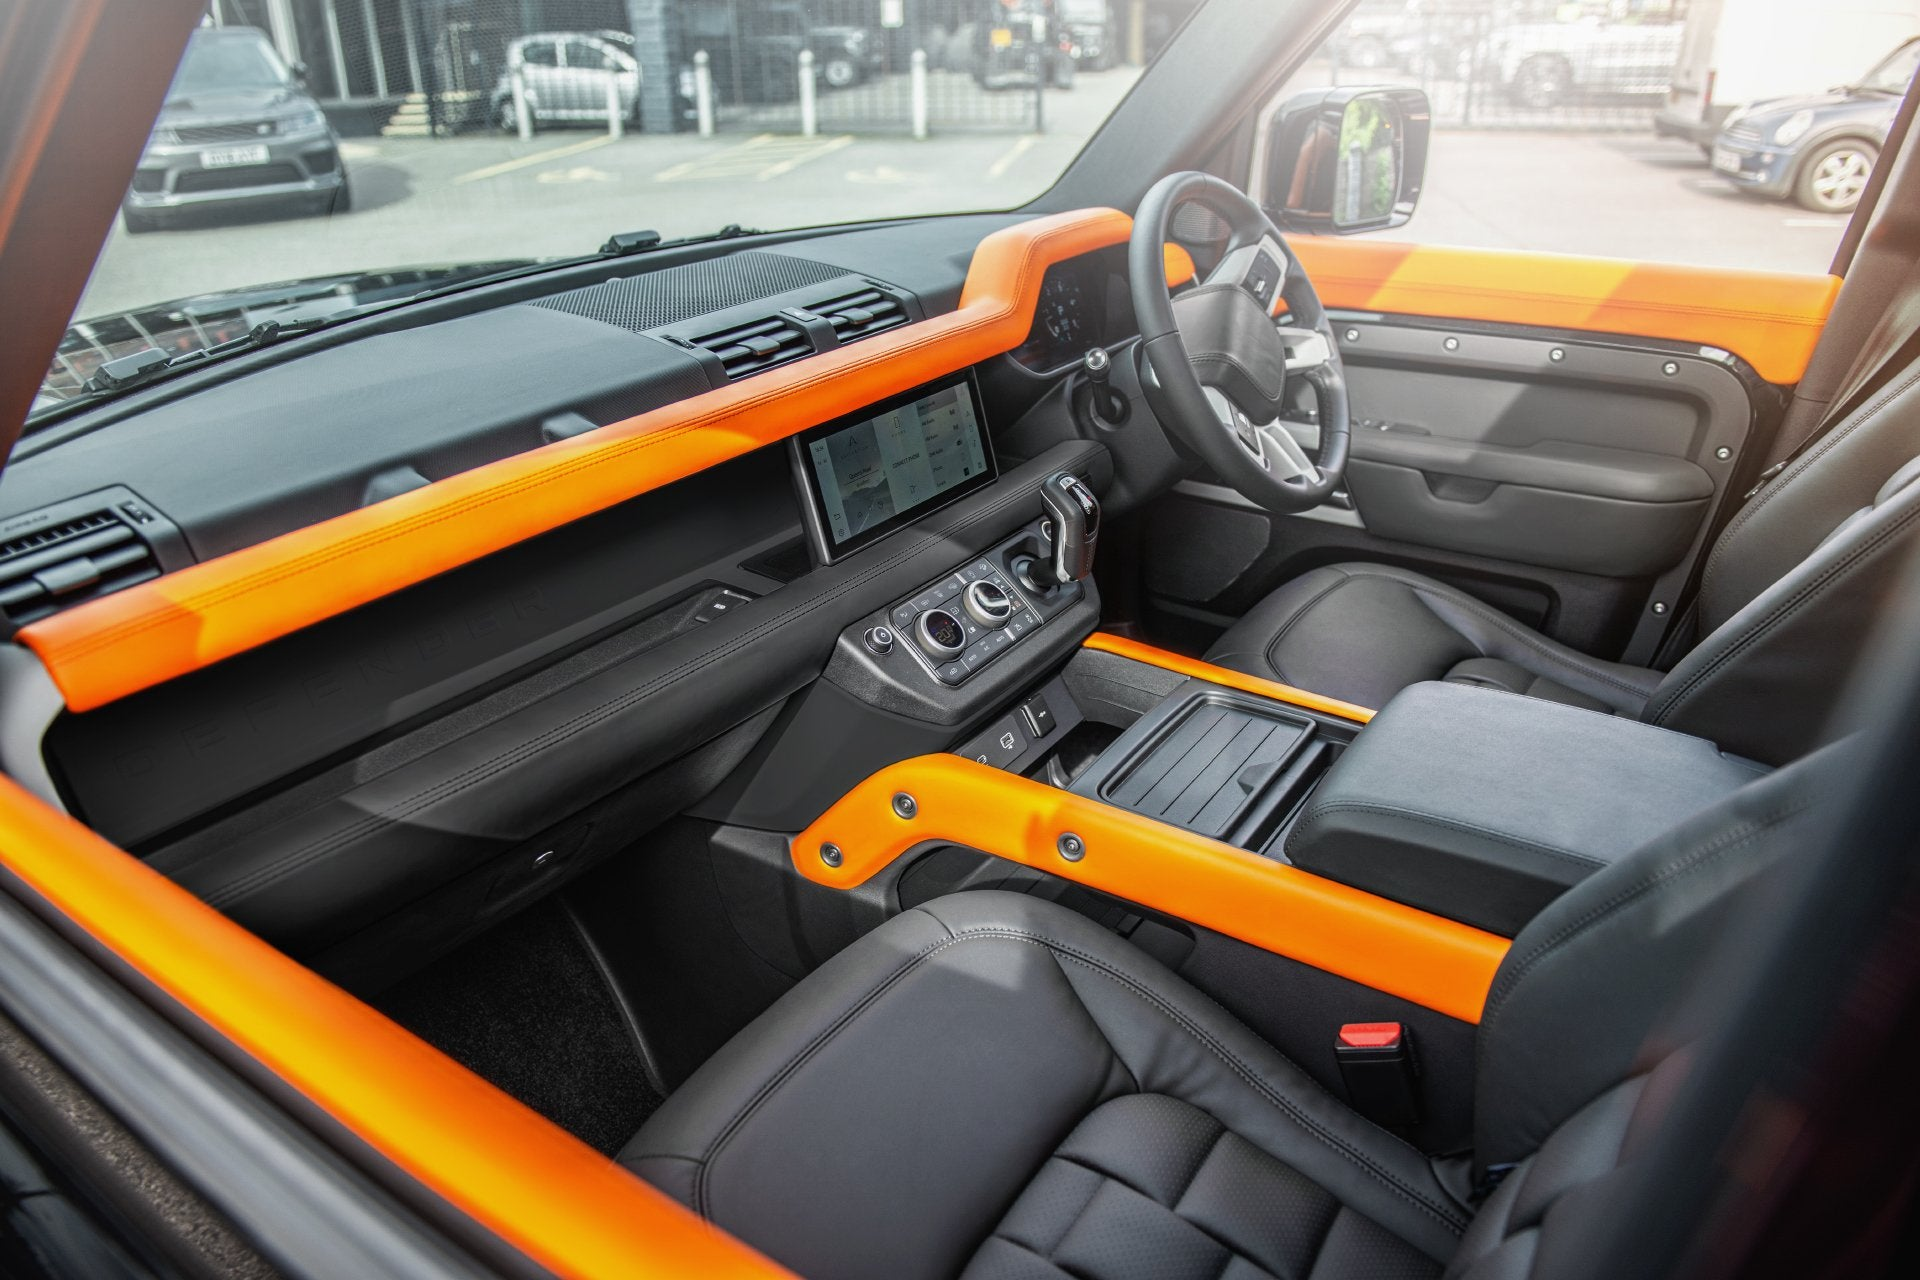 Land Rover Defender 110 (2020-Present) Environment 2: Upper and Lower Interior